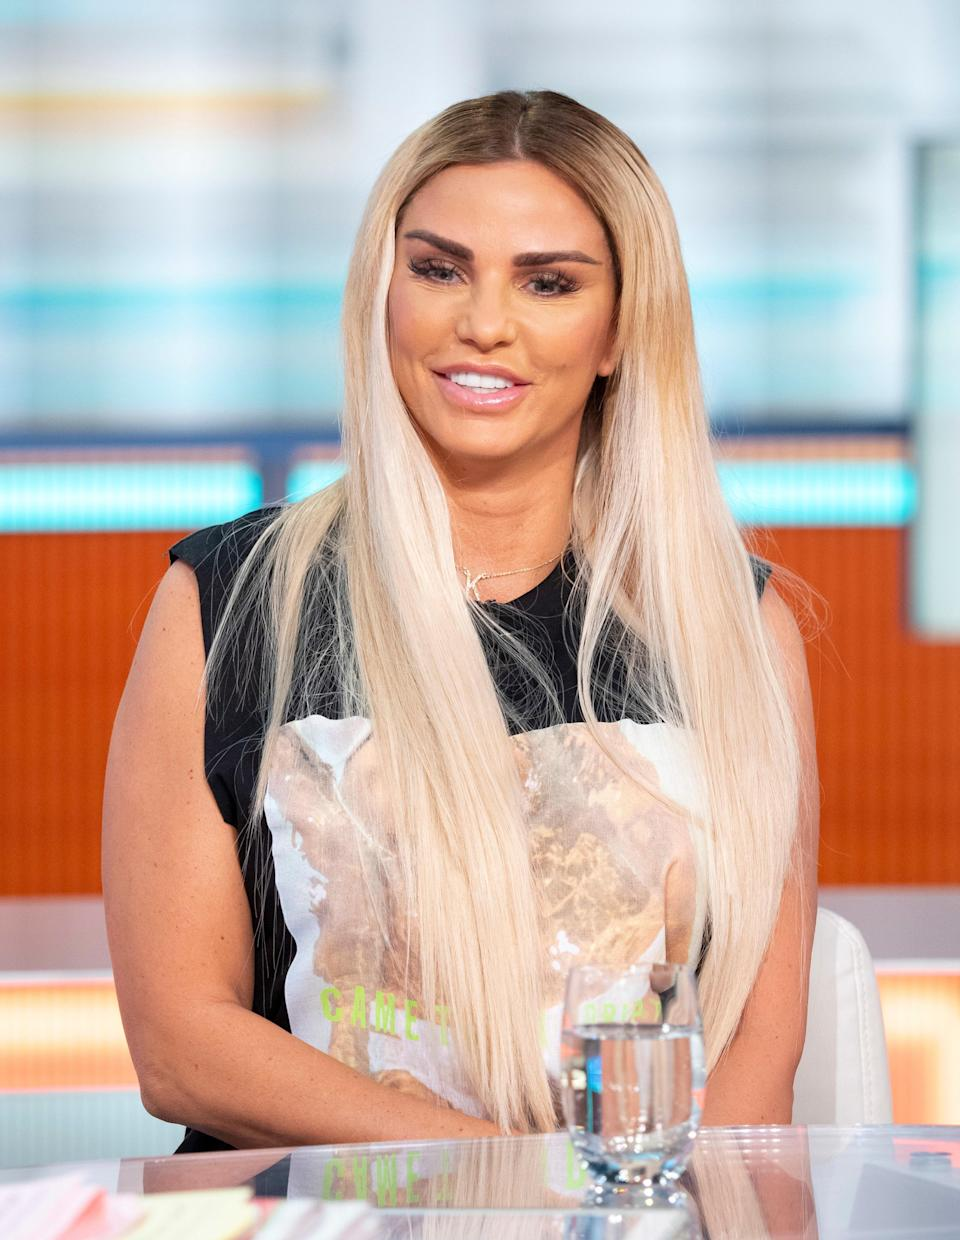 Glamour model Katie Price says shes going to keep having